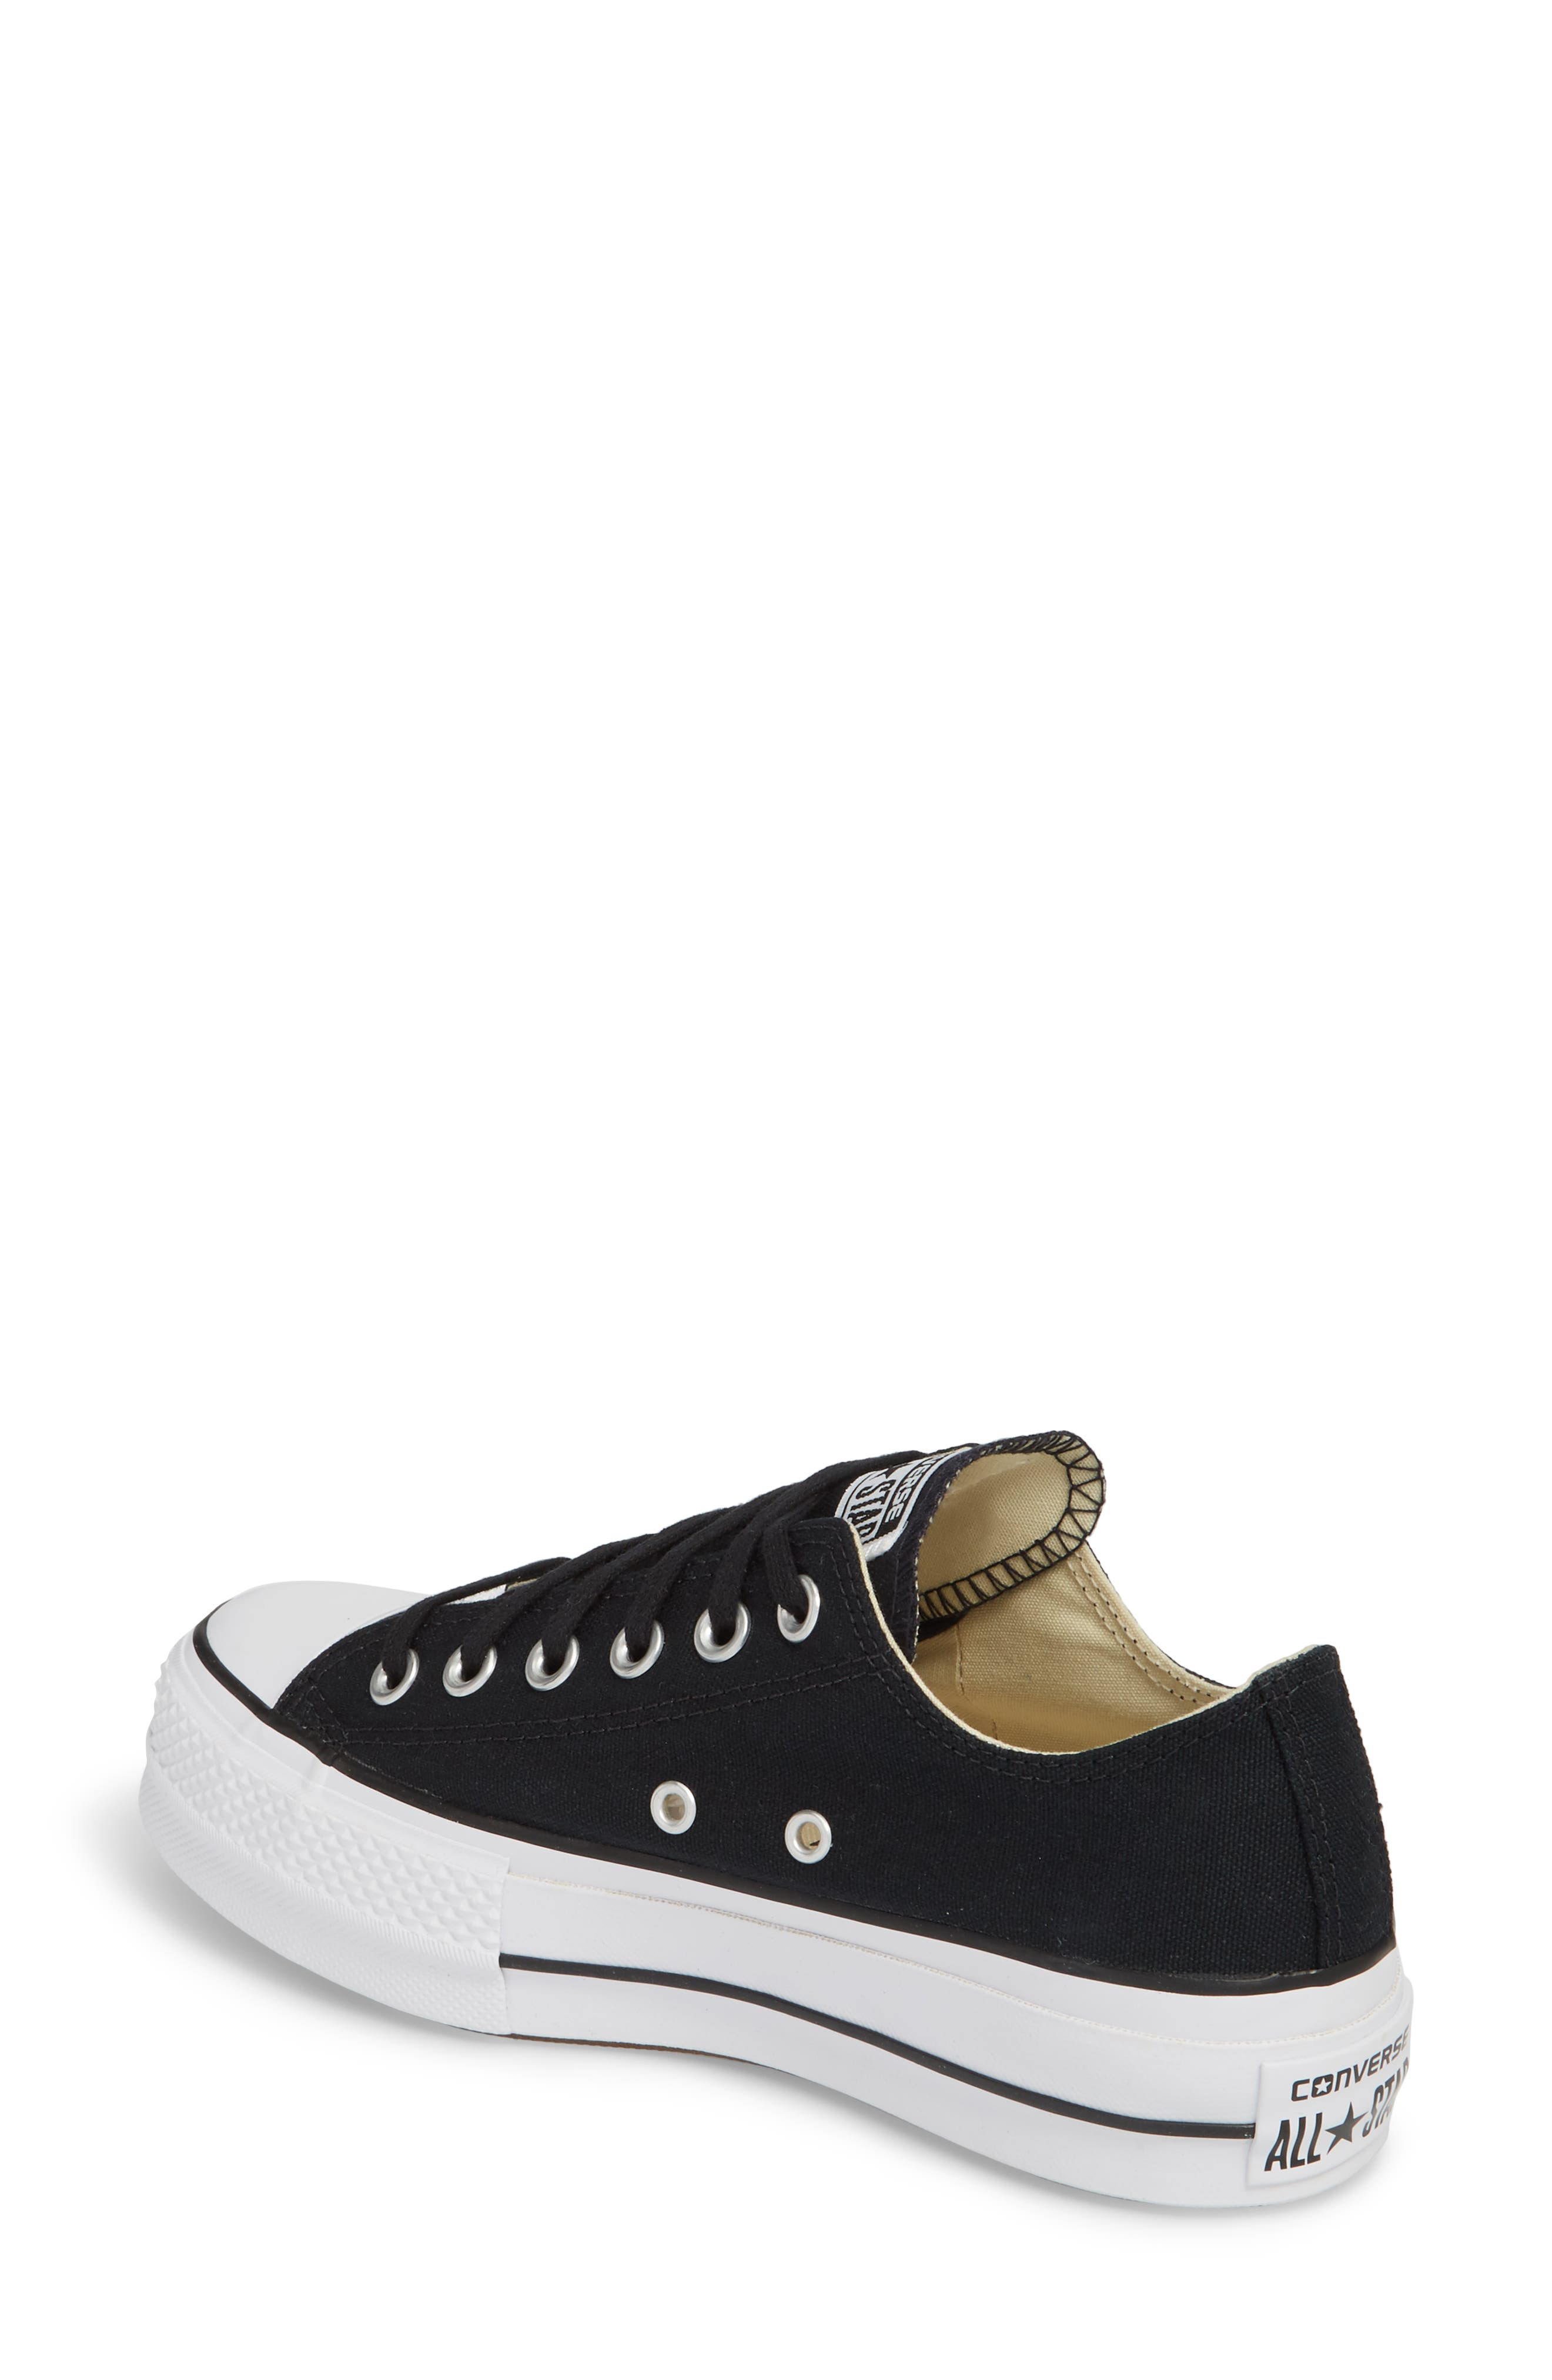 CONVERSE, Chuck Taylor<sup>®</sup> All Star<sup>®</sup> Platform Sneaker, Alternate thumbnail 2, color, BLACK/ WHITE/ WHITE